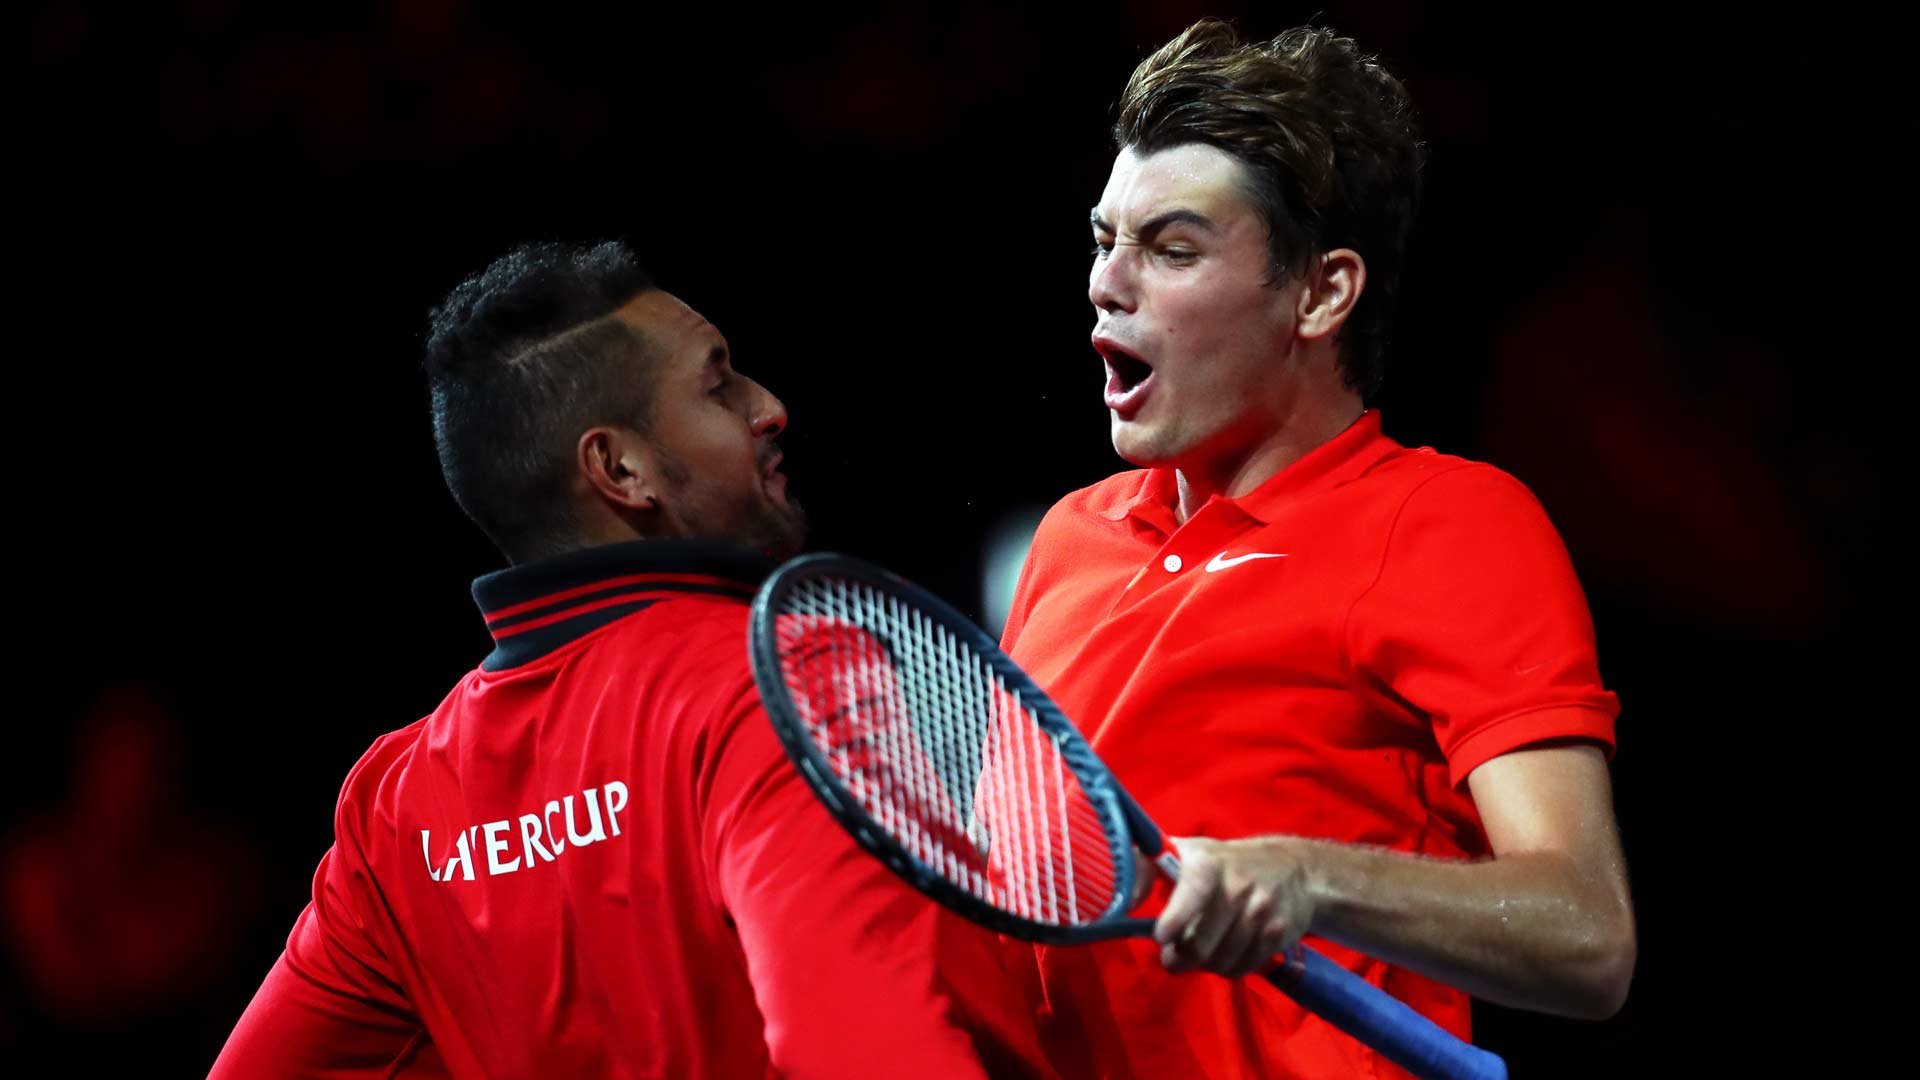 <a href='https://www.atptour.com/en/players/taylor-fritz/fb98/overview'>Taylor Fritz</a> reacts at <a href='https://www.atptour.com/en/tournaments/laver-cup/9210/overview'>Laver Cup</a> 2019